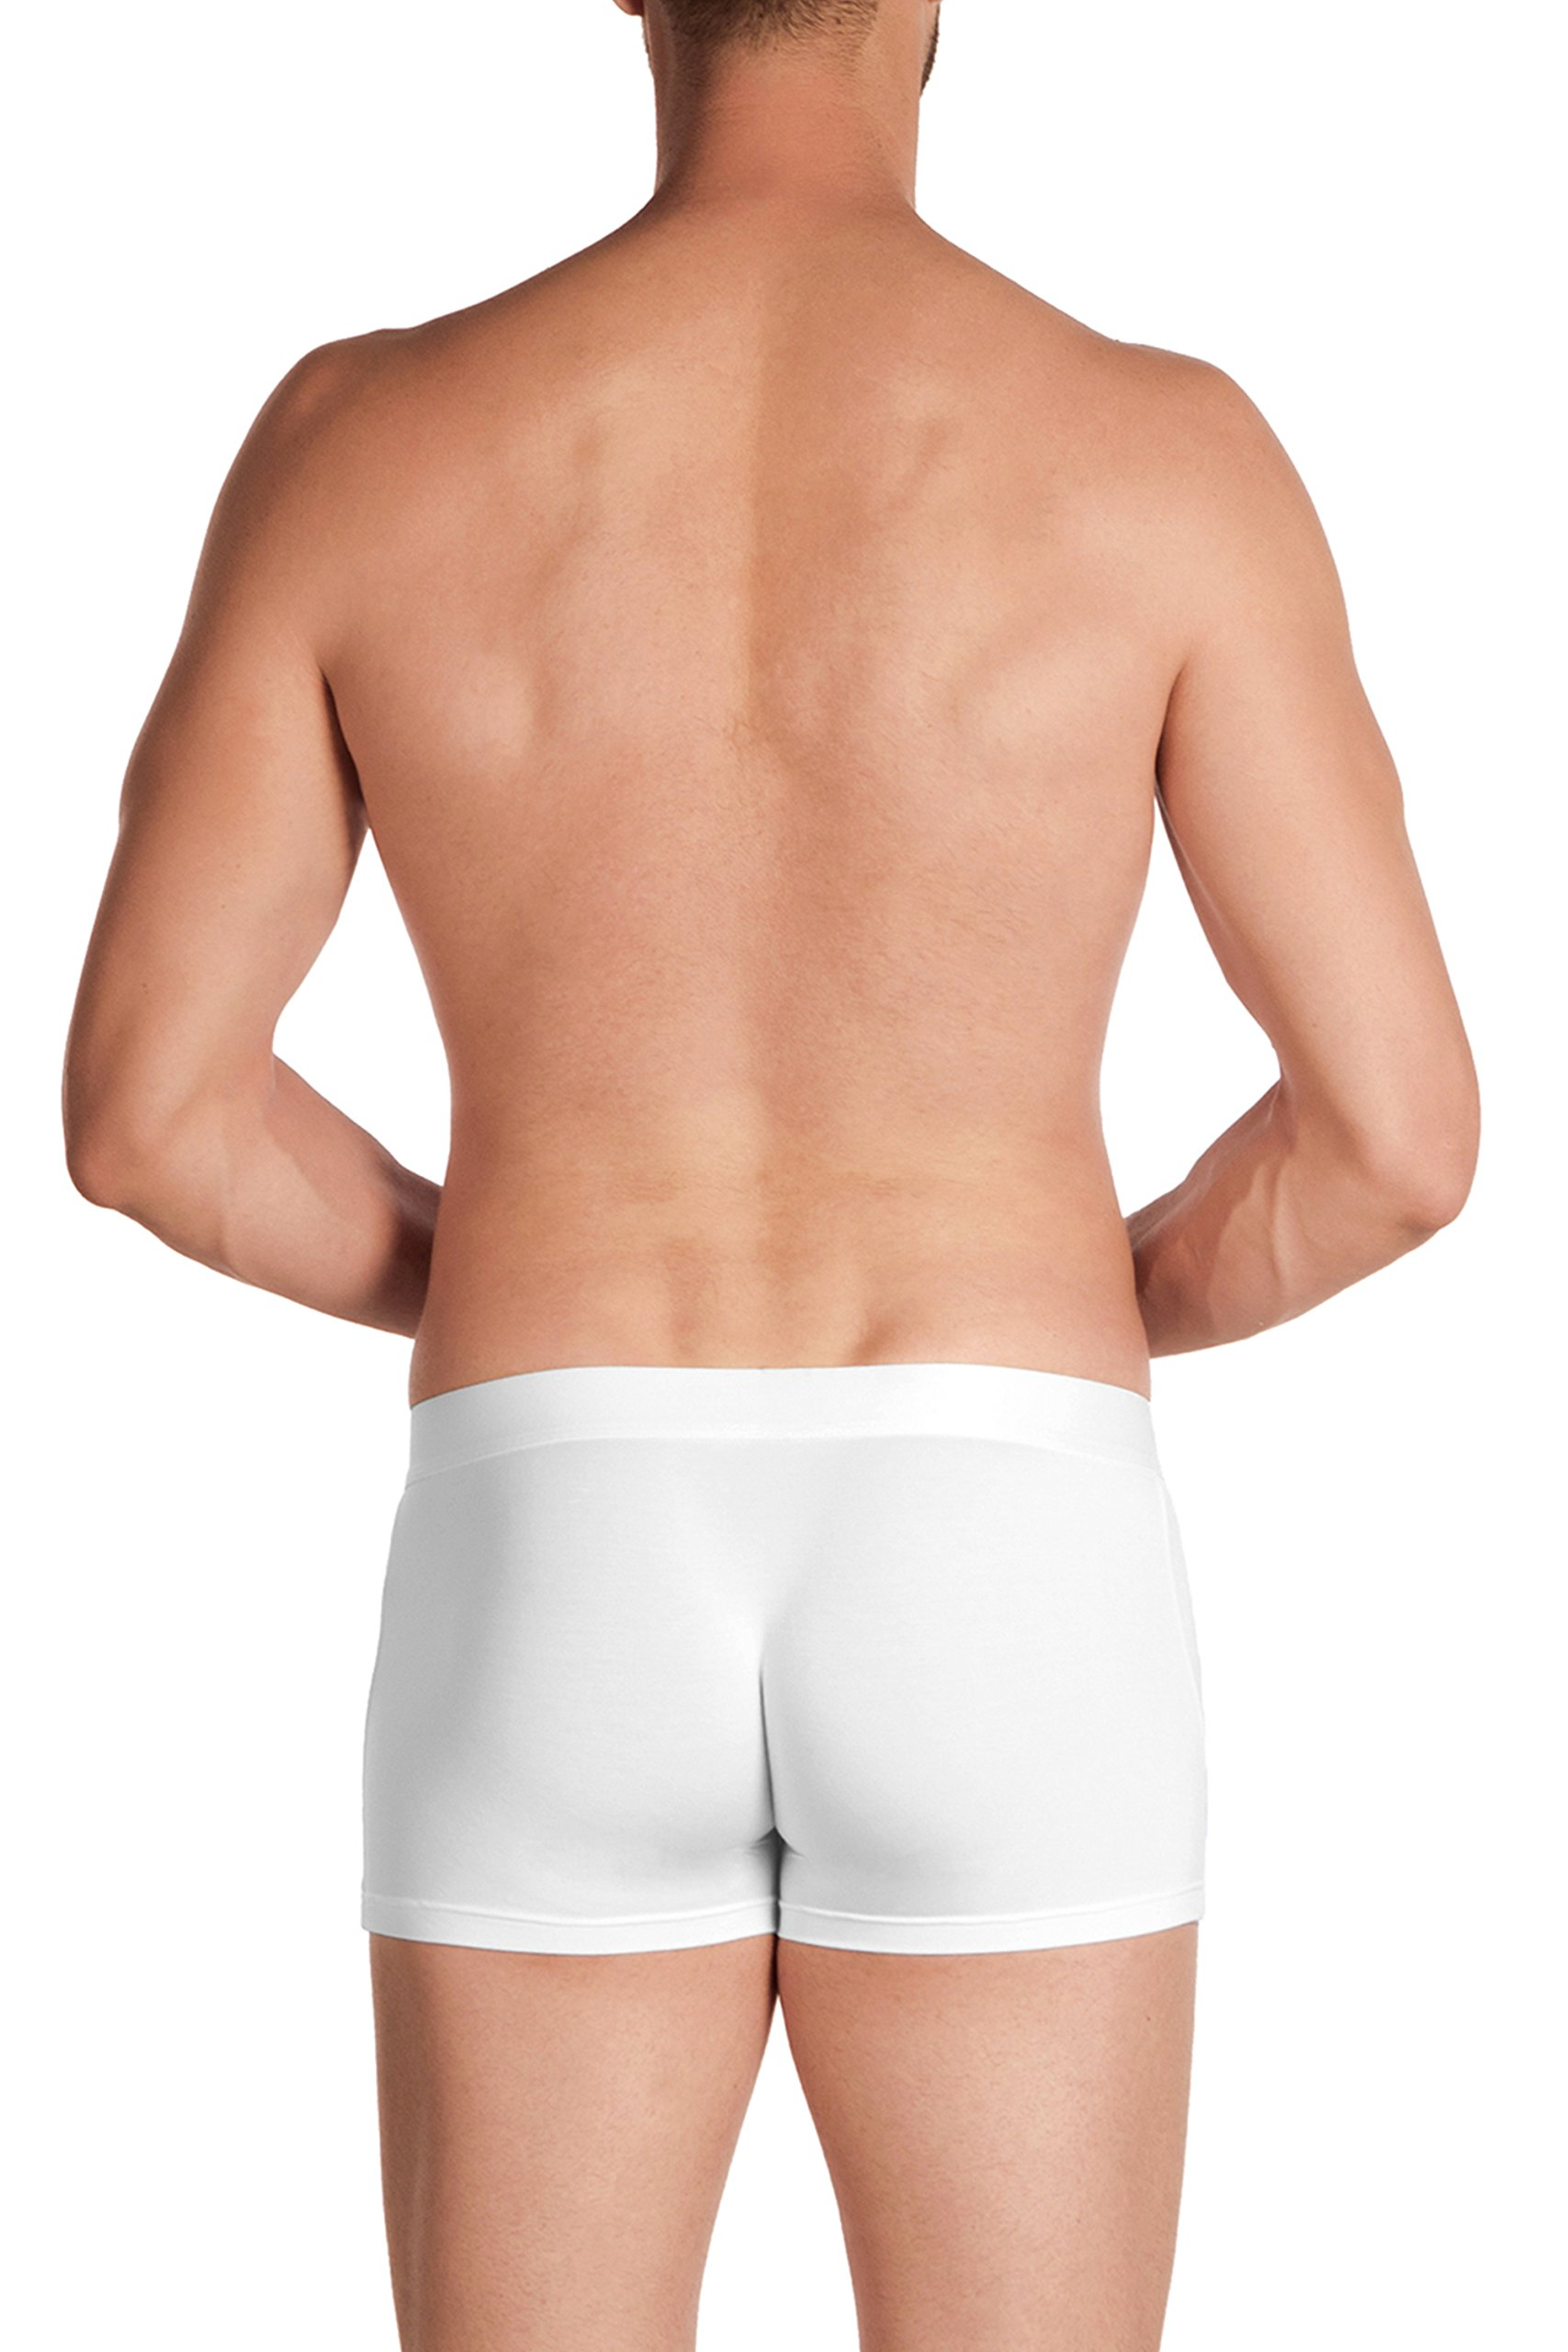 Obviously PrimeMan - Boxer Brief 3 inch Leg - White - Medium